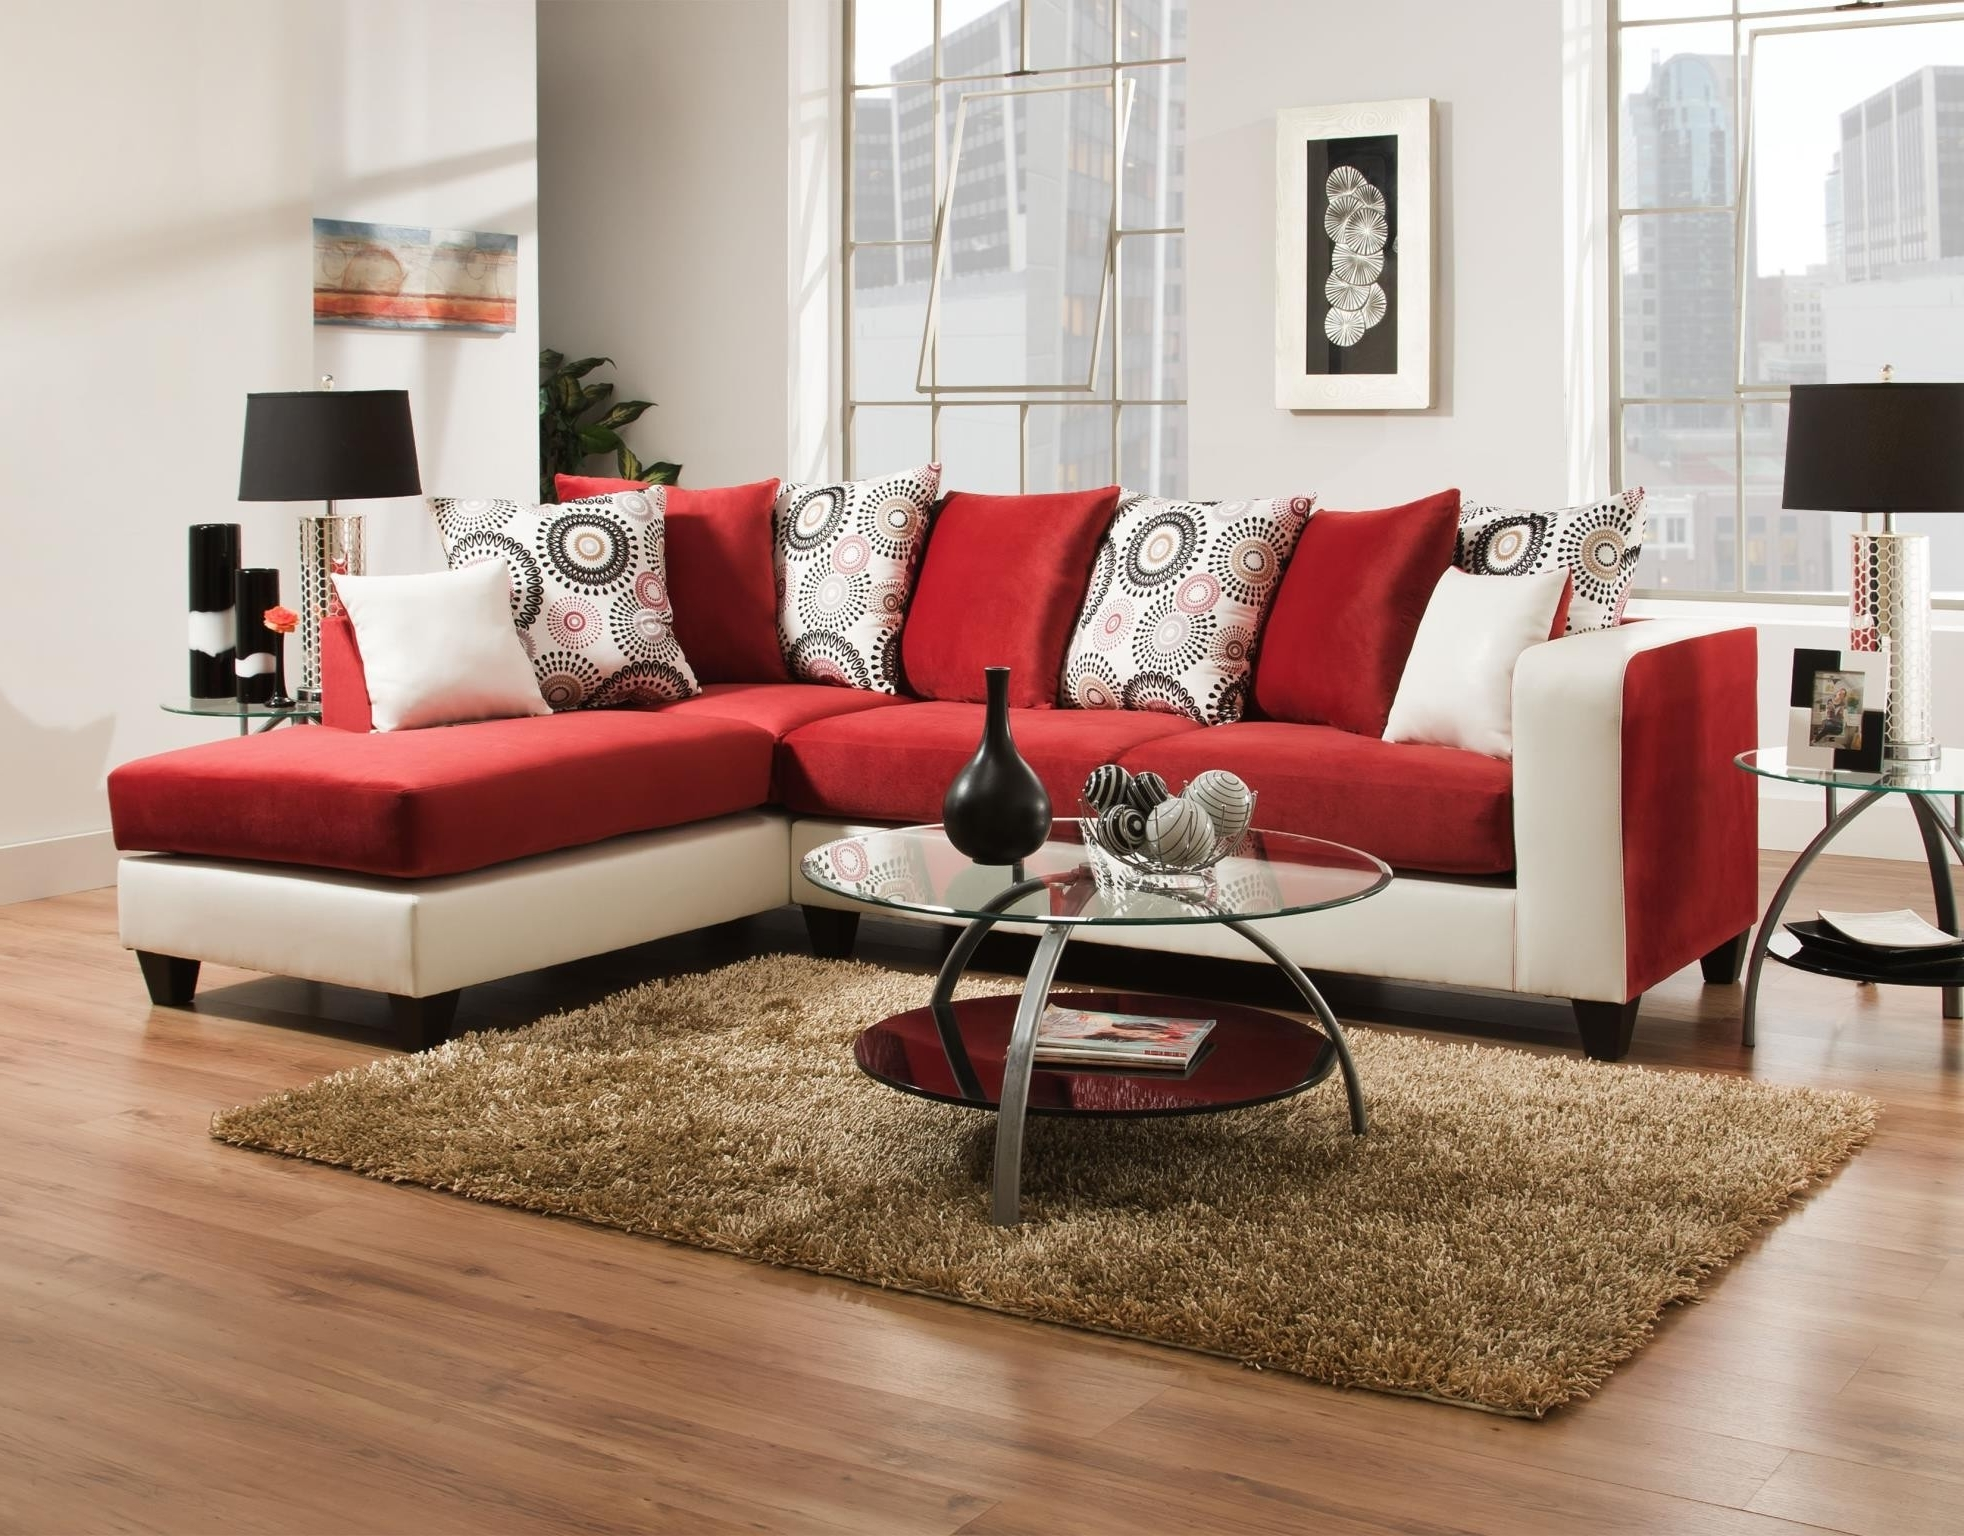 New Sectional Sofa Tampa – Buildsimplehome Within Trendy Tampa Sectional Sofas (View 4 of 20)